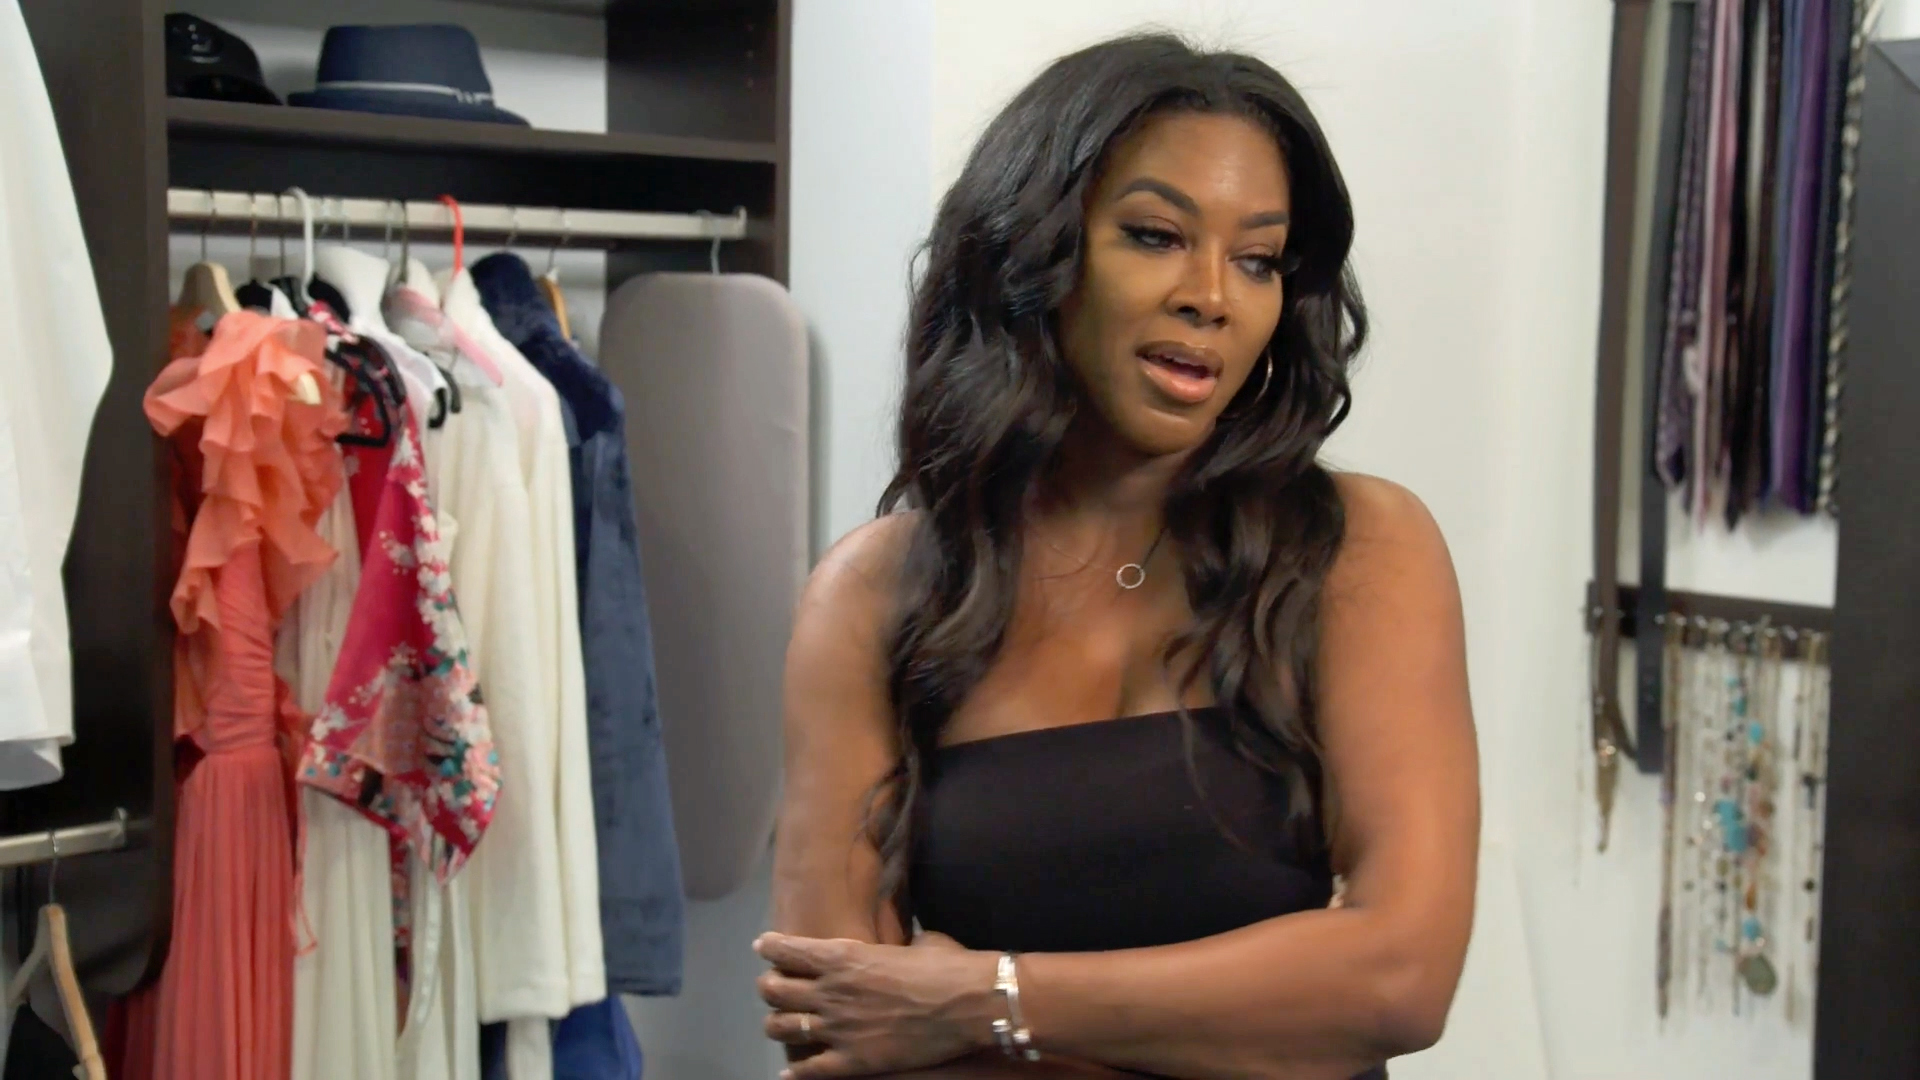 Kenya Moore Removes Marc Daly's Belongings from Her Home